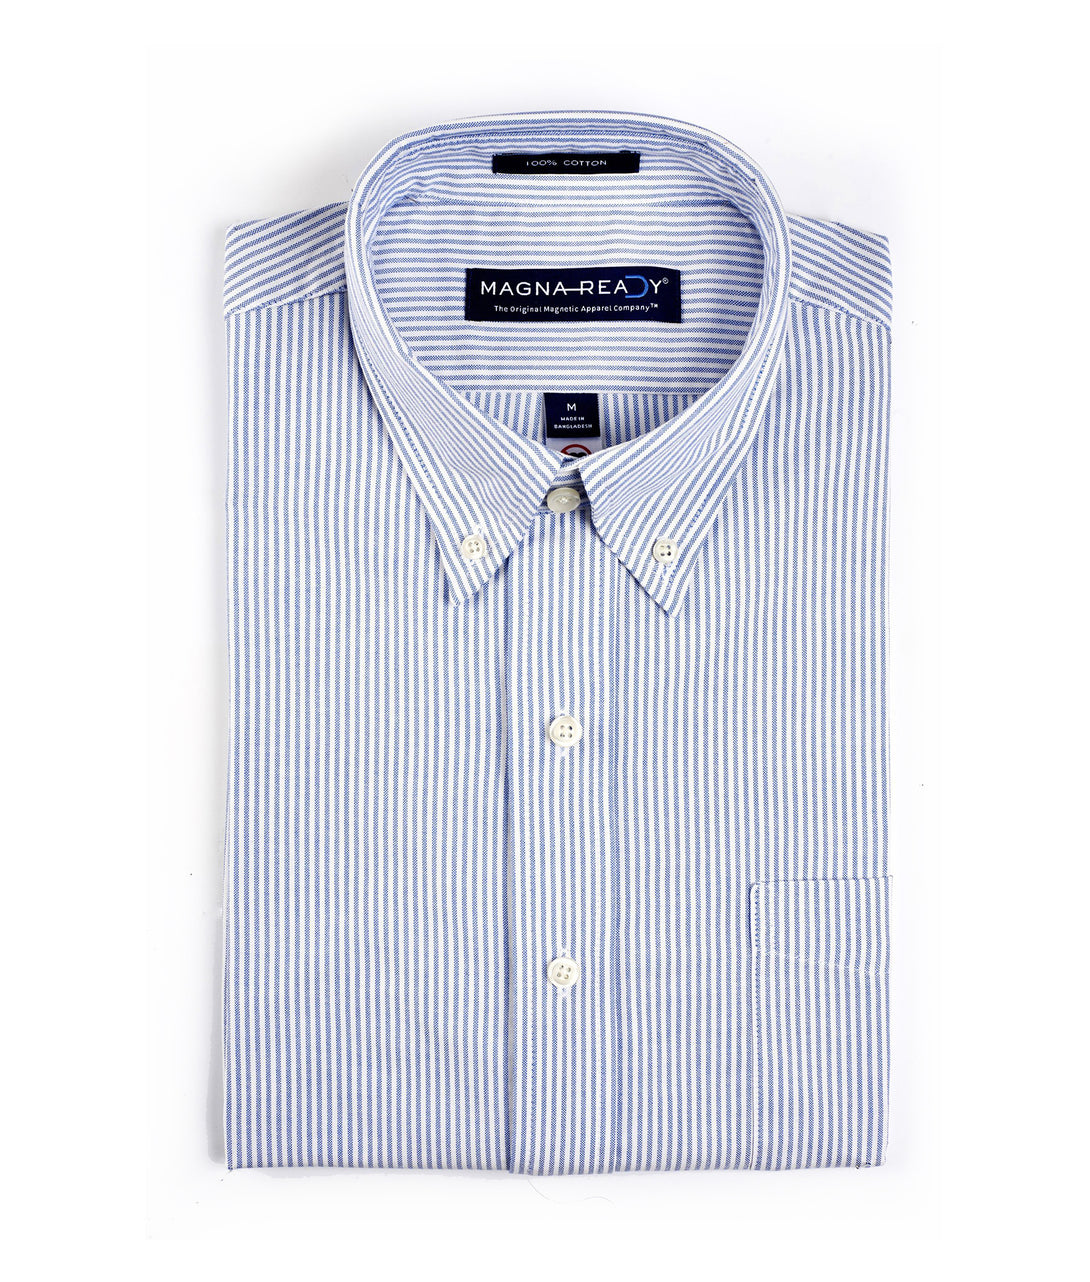 University Oxford Stripe Short Sleeve Shirt with Magnetic Closures | JUNIPERunltd